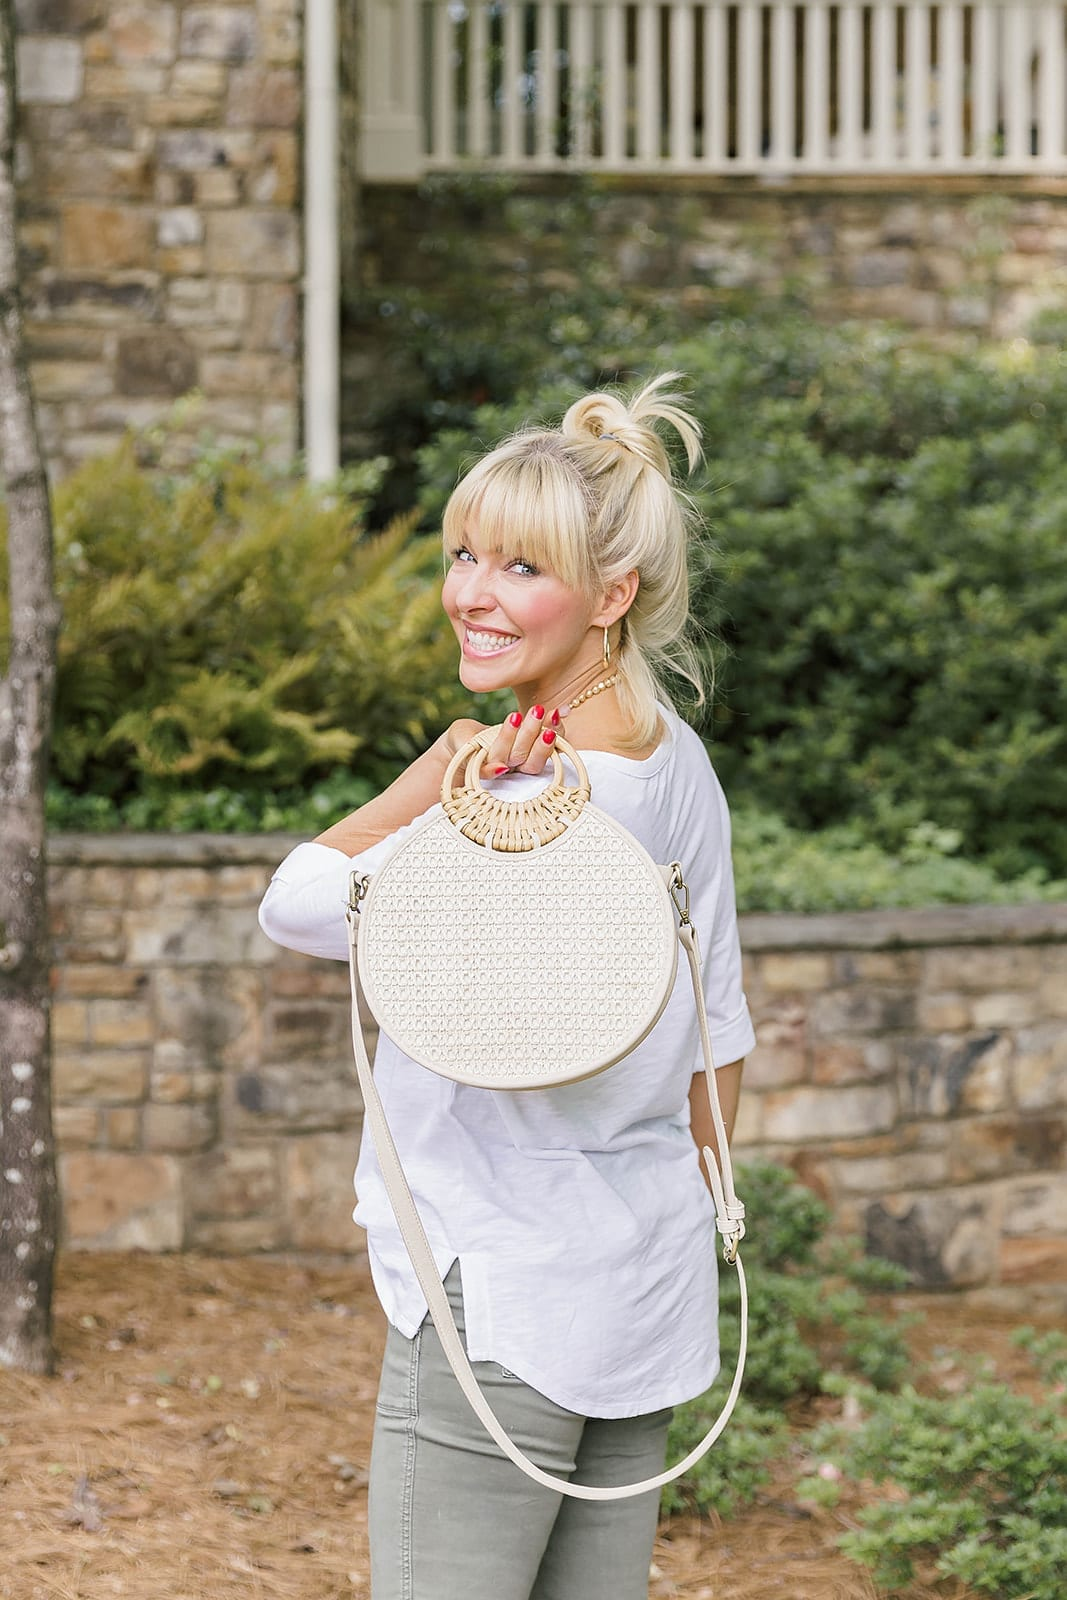 Woven Handbag on Sale - perfect summer handbag on sale! Wear it to the beach, a great vacation bag or everyday cute trendy woven straw handbag on sale!